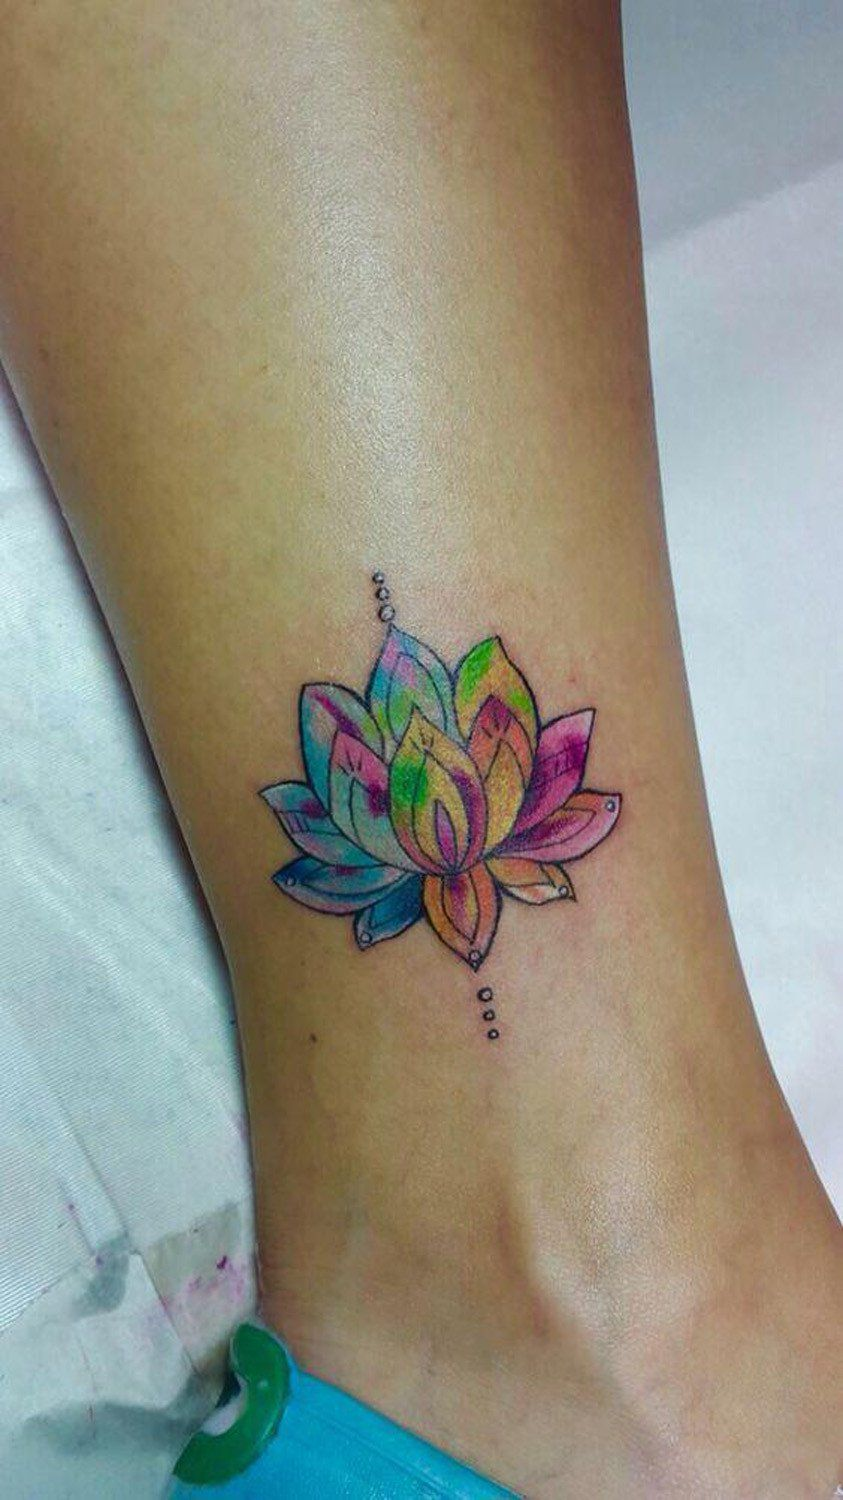 100 Most Popular Lotus Tattoos Ideas For Women Flower Wrist Tattoos Lotus Flower Tattoo Design Lotus Tattoo Design